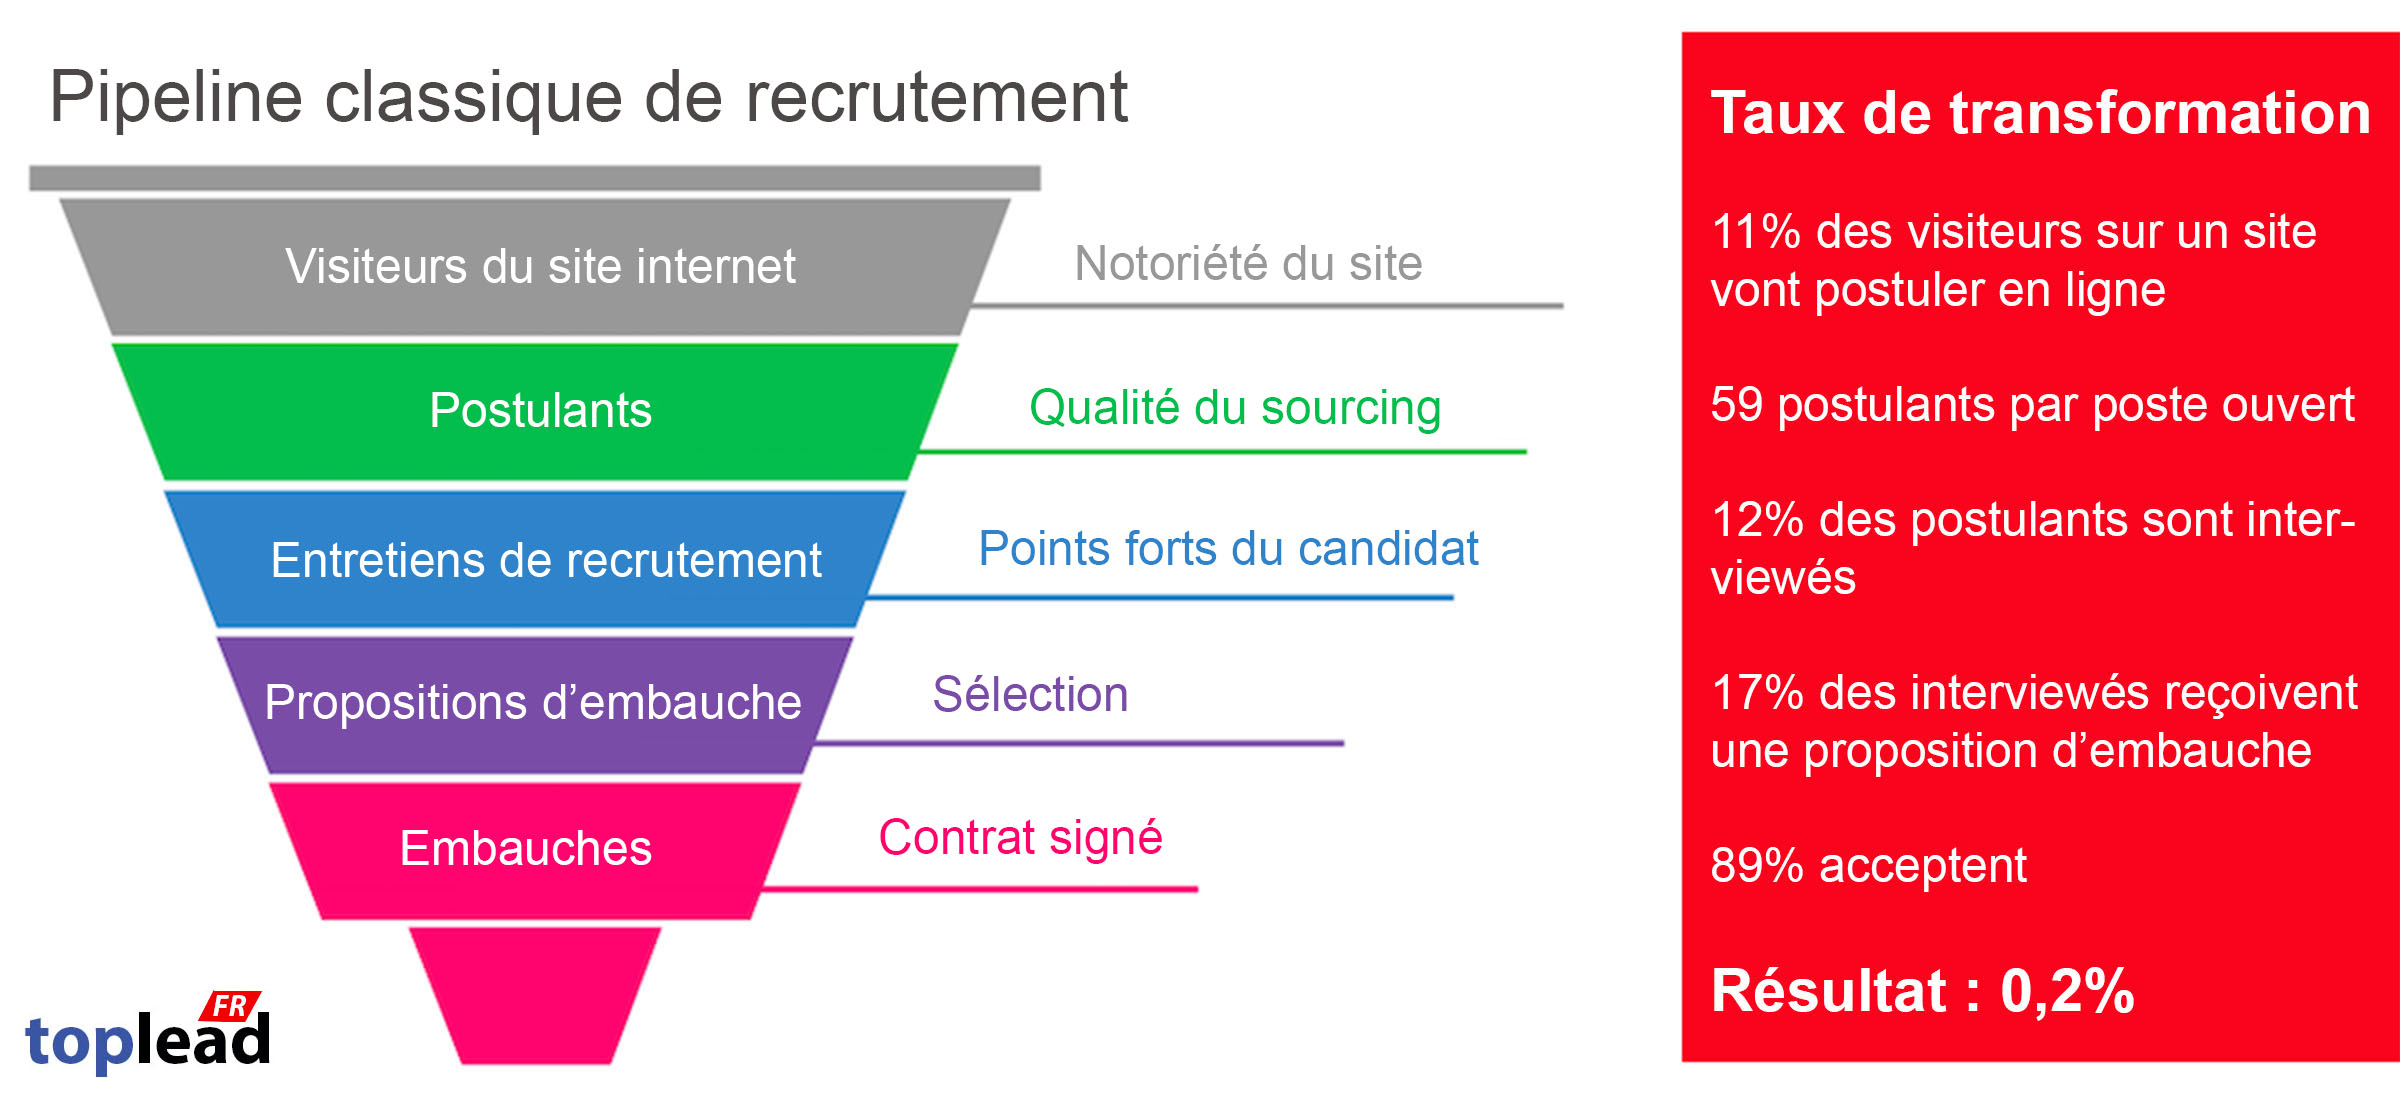 Passez à l'Outbound/Inbound Recruiting!